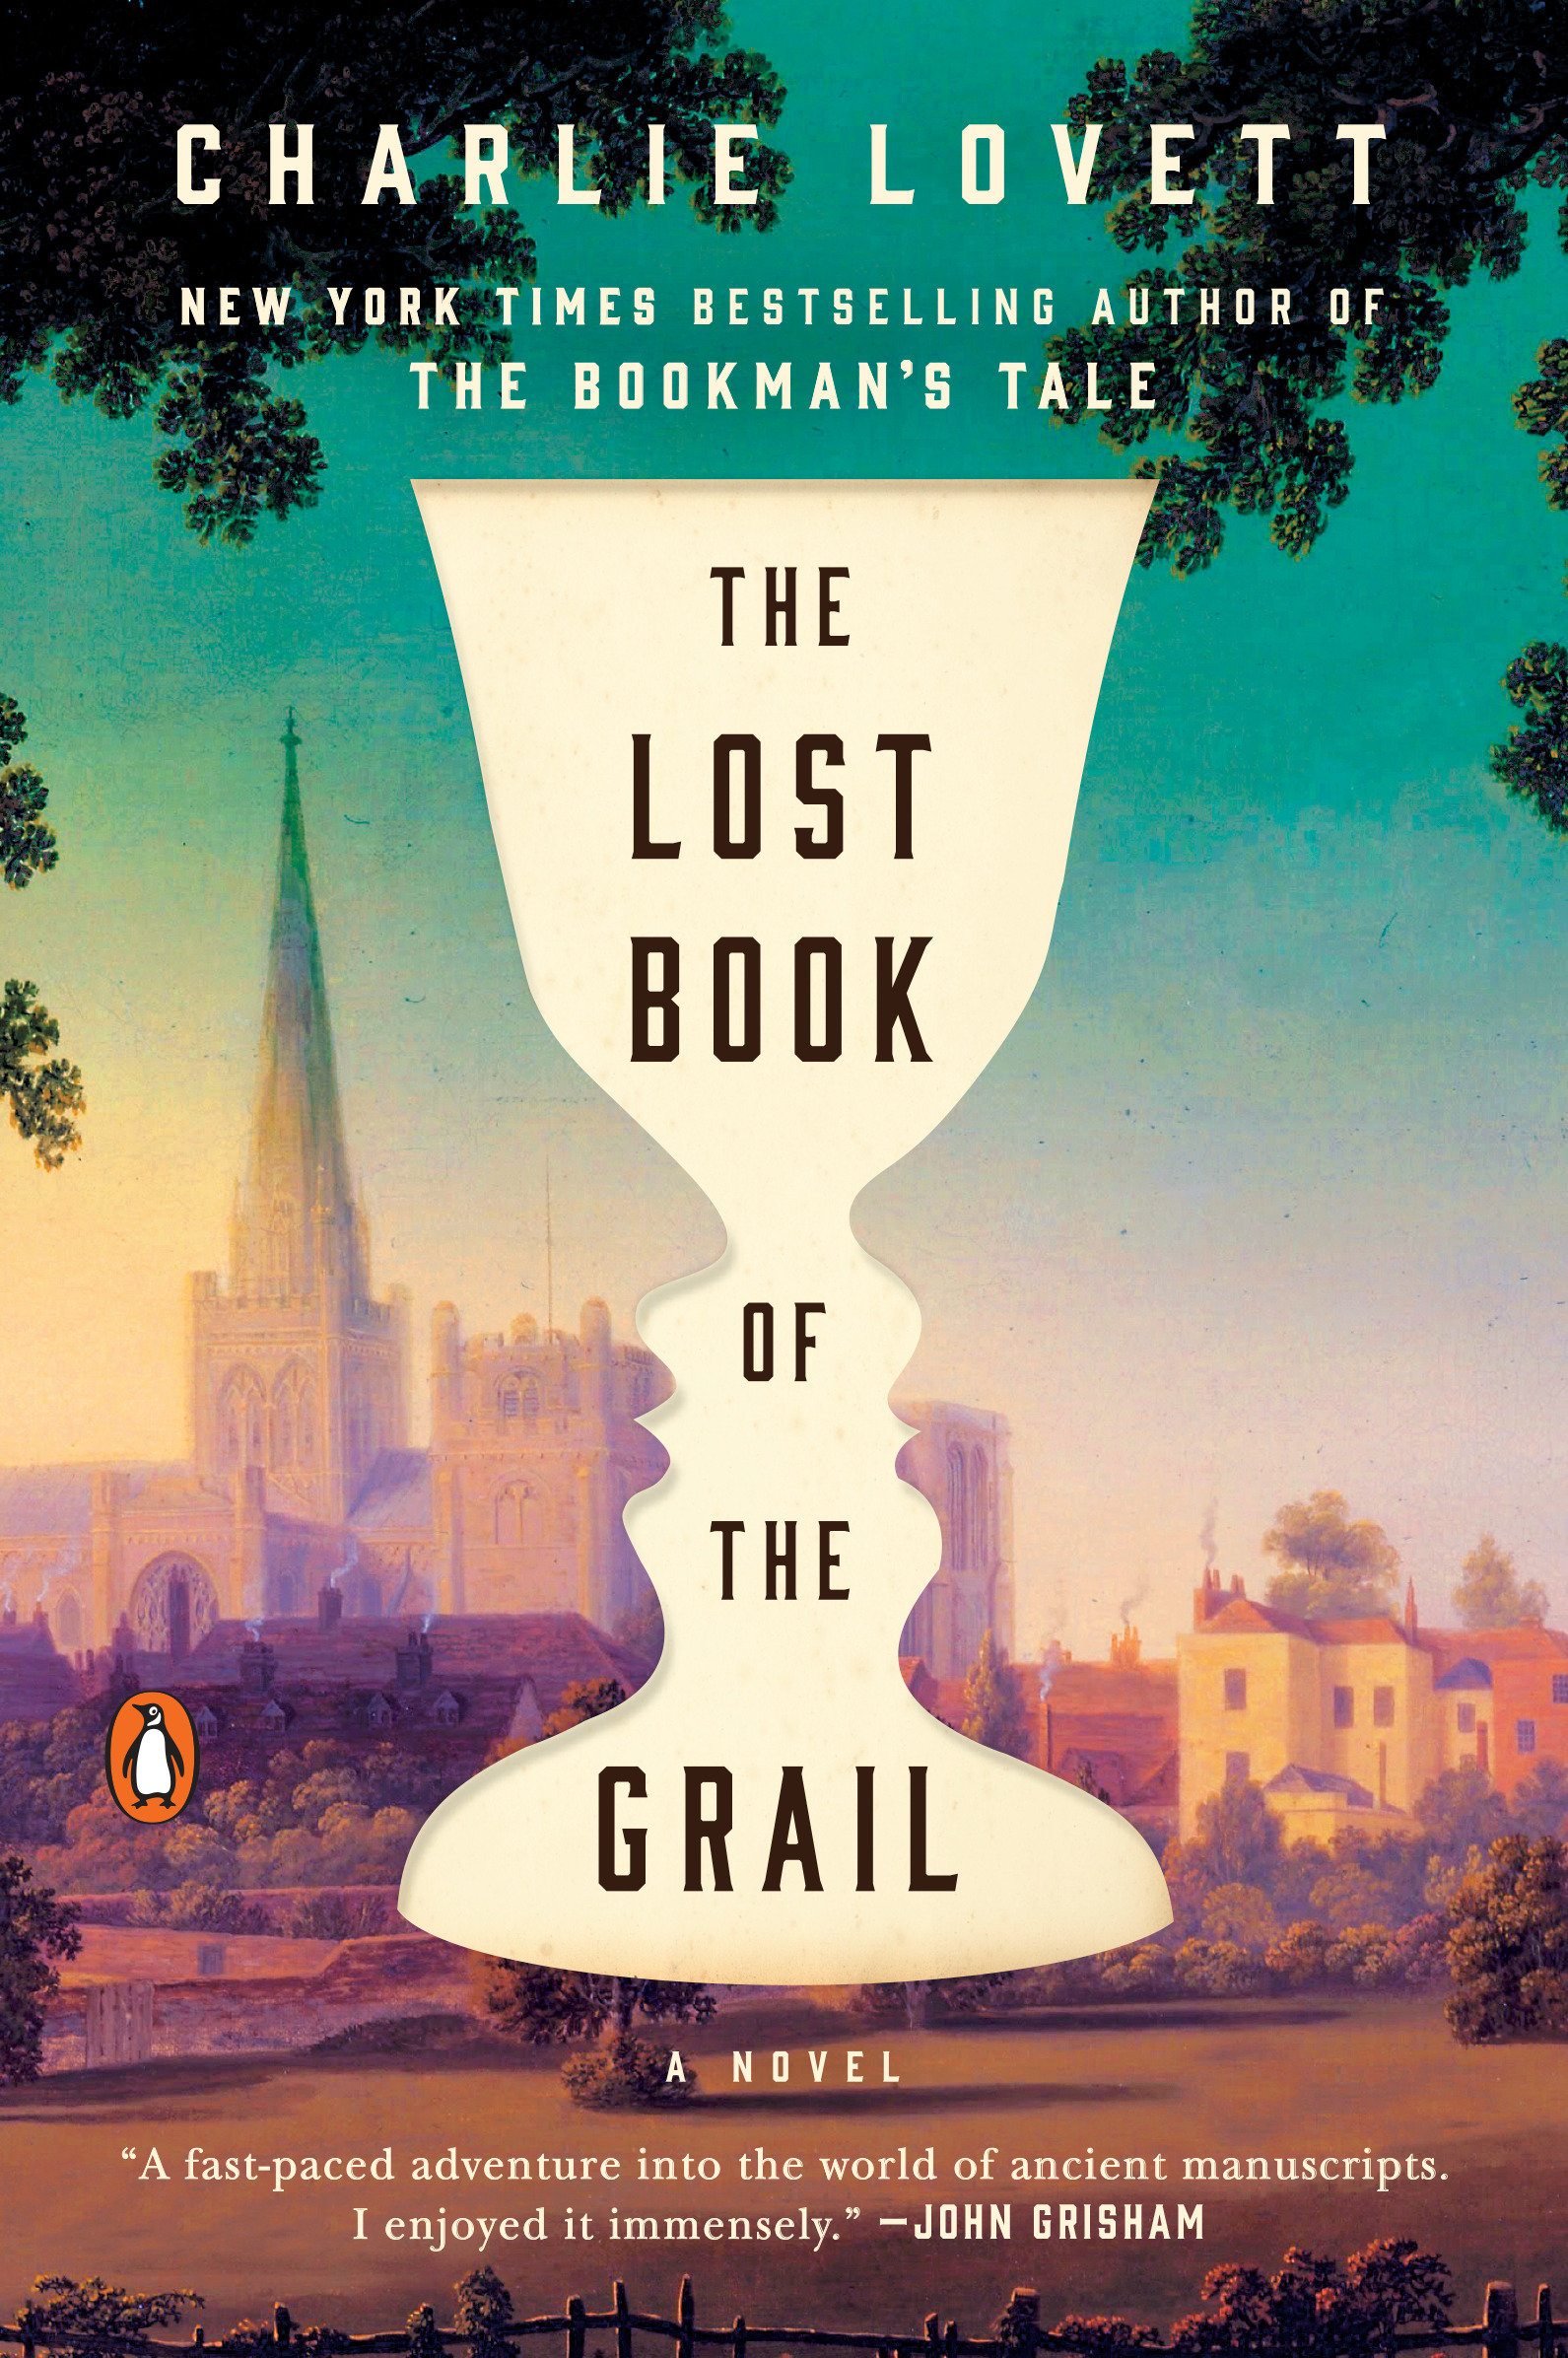 The Lost Book of the Grail A Novel